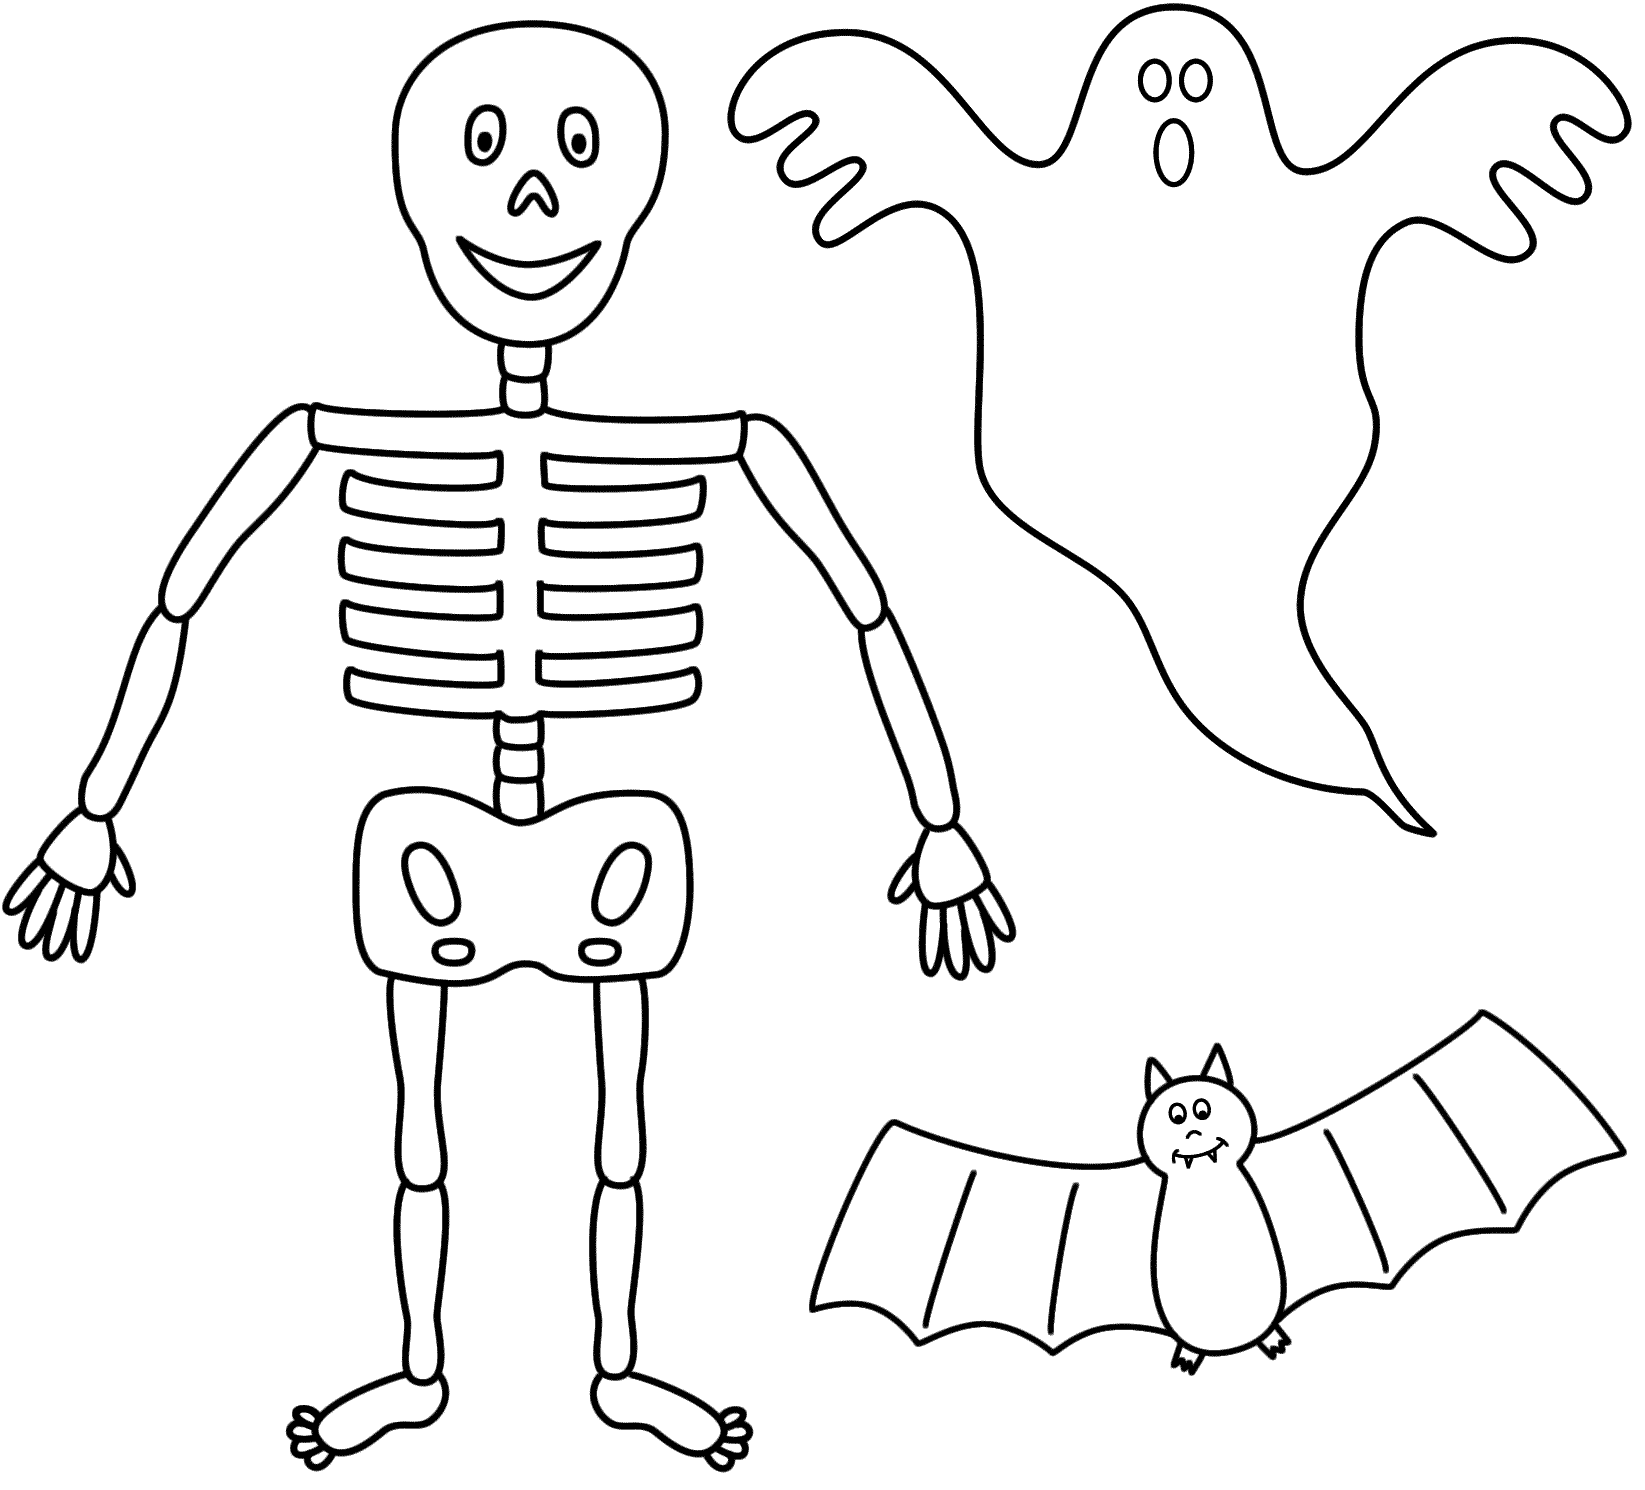 Drawn ghostly halloween coloring Collections Skeleton Halloween (08)